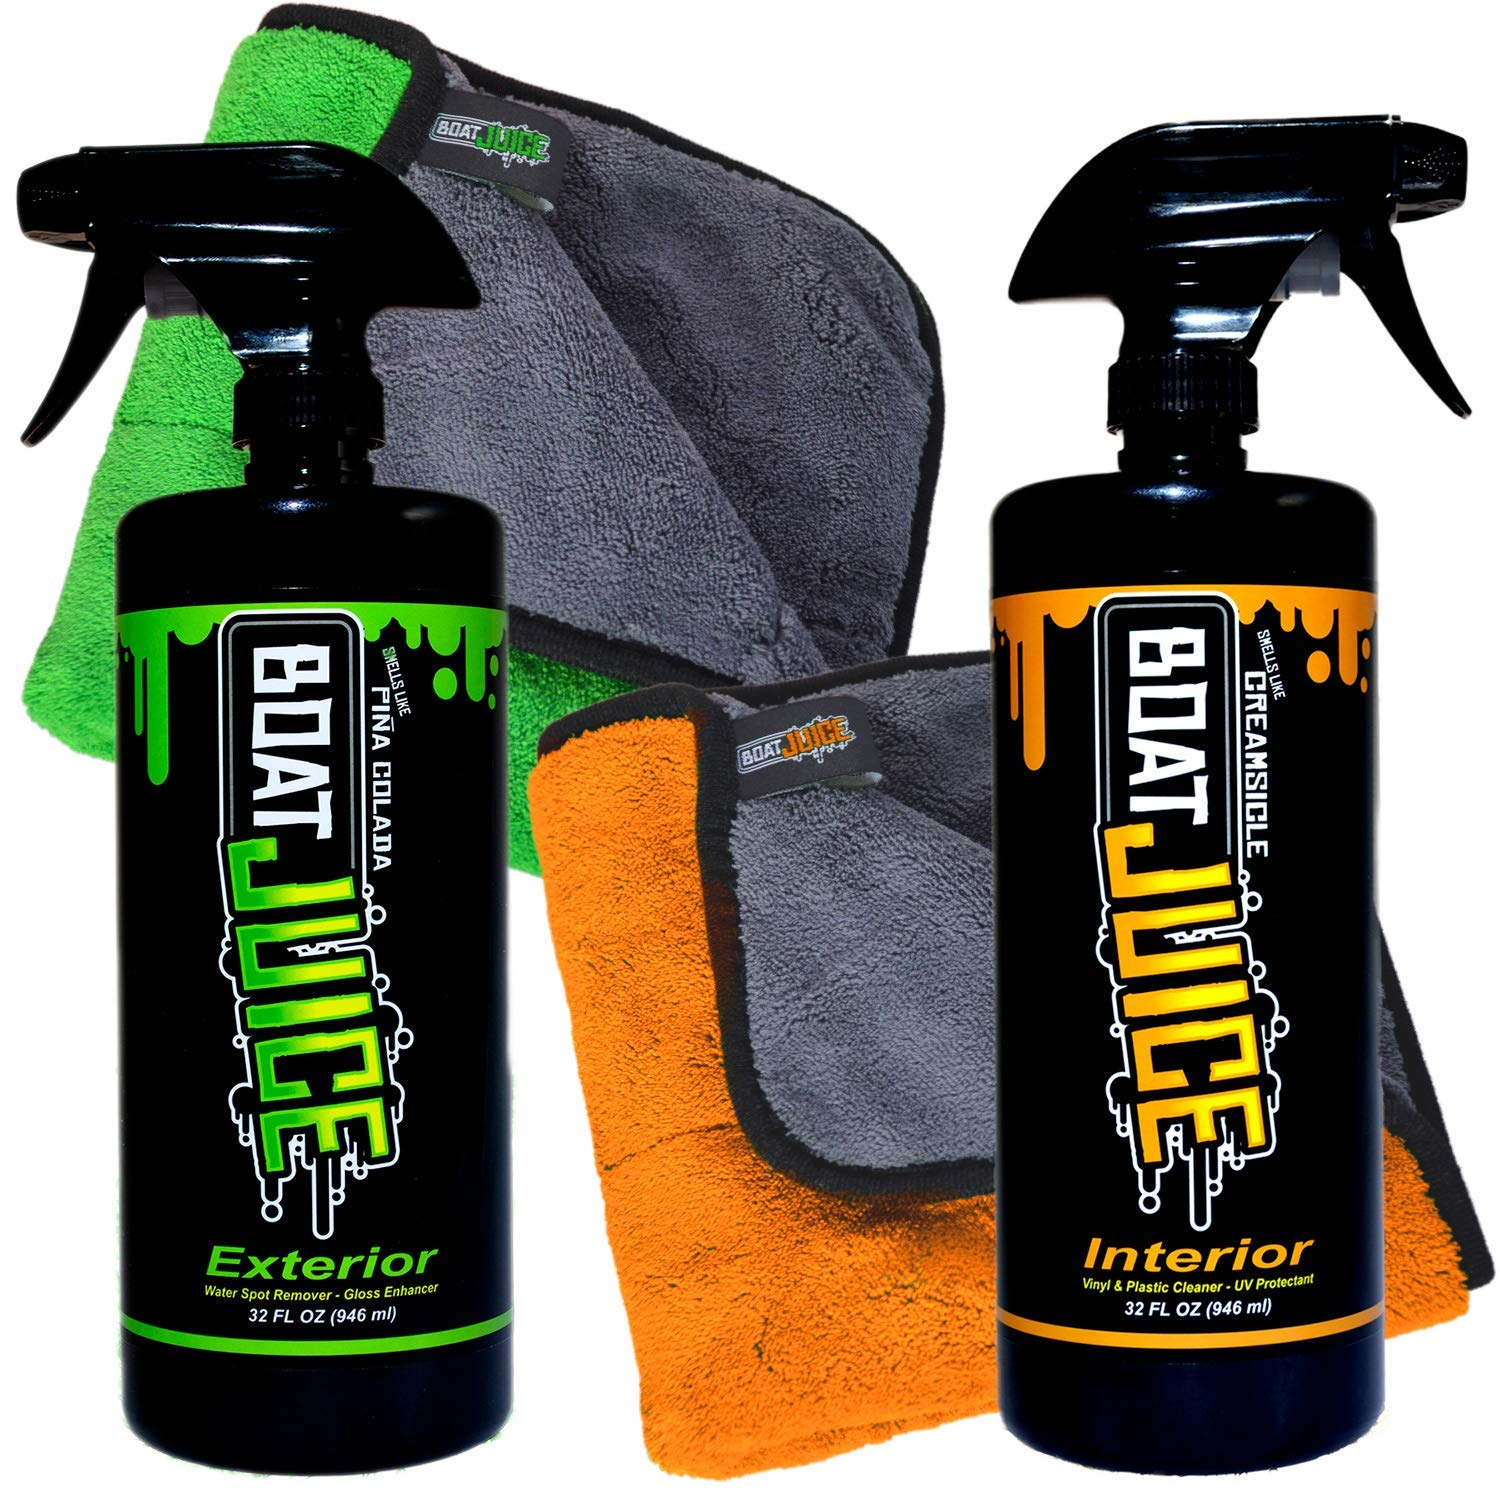 Boat Juice Cleaner Bundle Pack - 32oz Exterior Water Spot Remover Polymer Wax Sealant - 32oz Interior Boat Cleaner with UV Protectant - Includes Interior and Exterior Towels